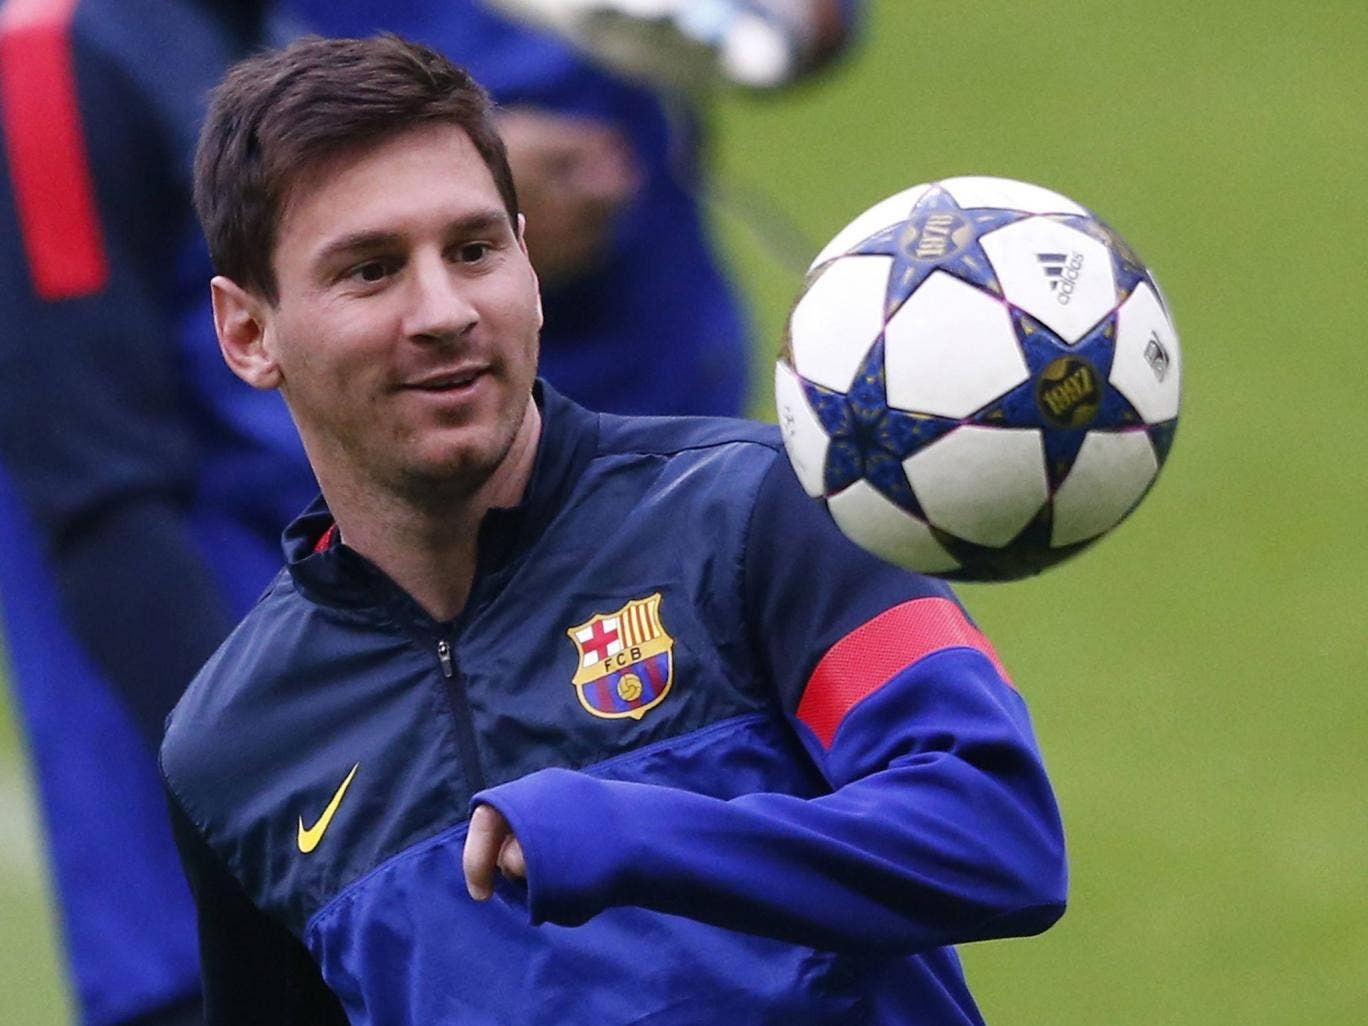 Lionel Messi will start in Munich after shaking off an injury